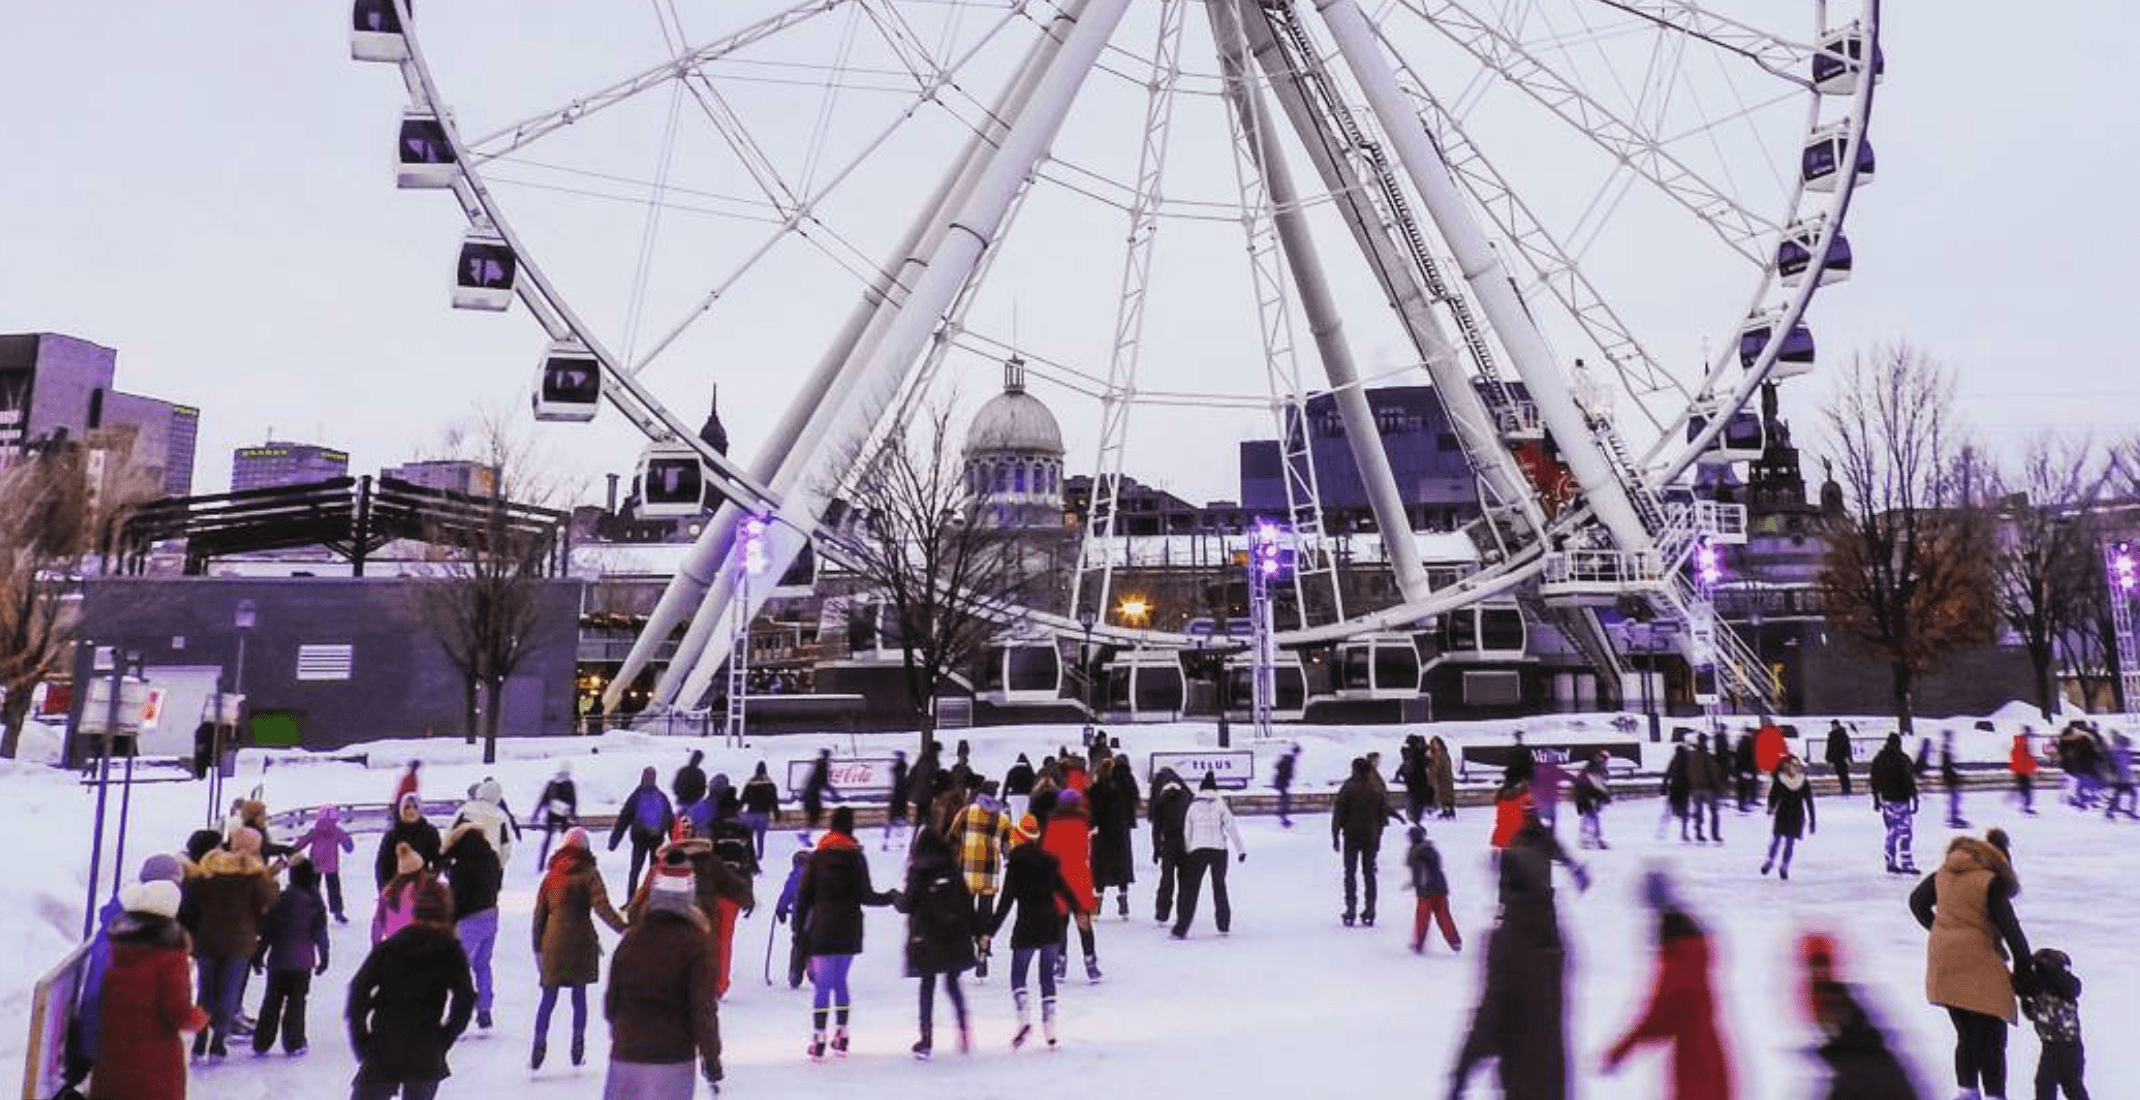 Montreal's Old Port skating rink will officially close for the season this weekend